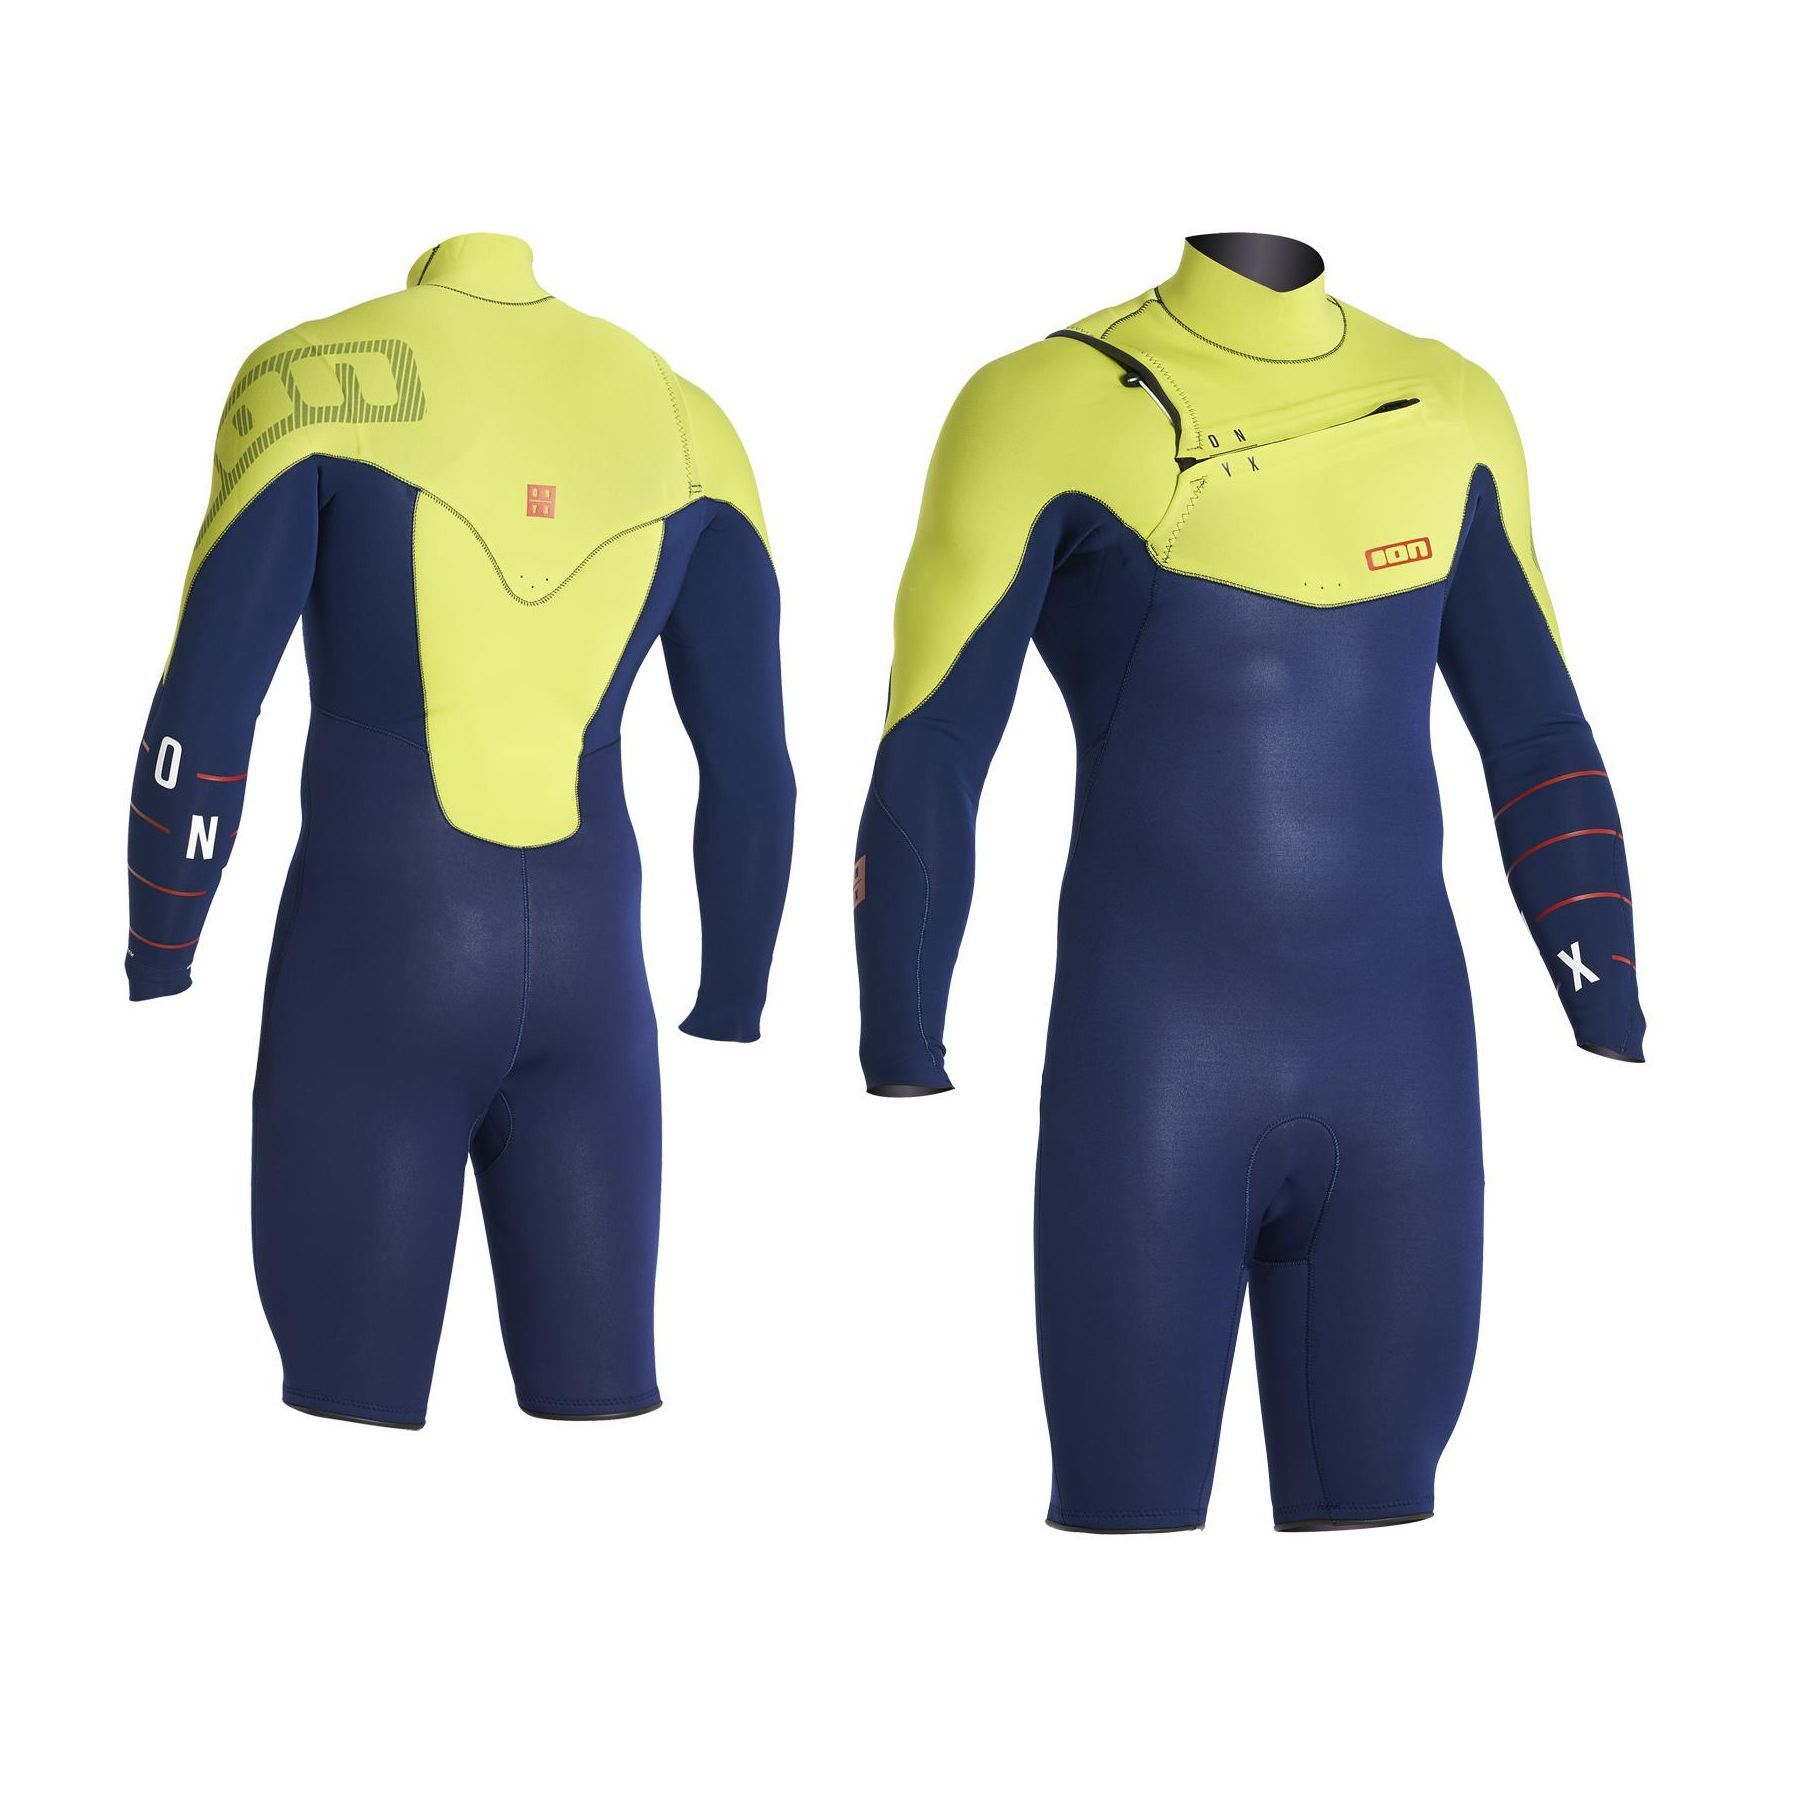 ION Onyx Mens Wetsuit Shorty Springy LS - BUY ONLINE! - Manly Surfboards d1535a0fbacc